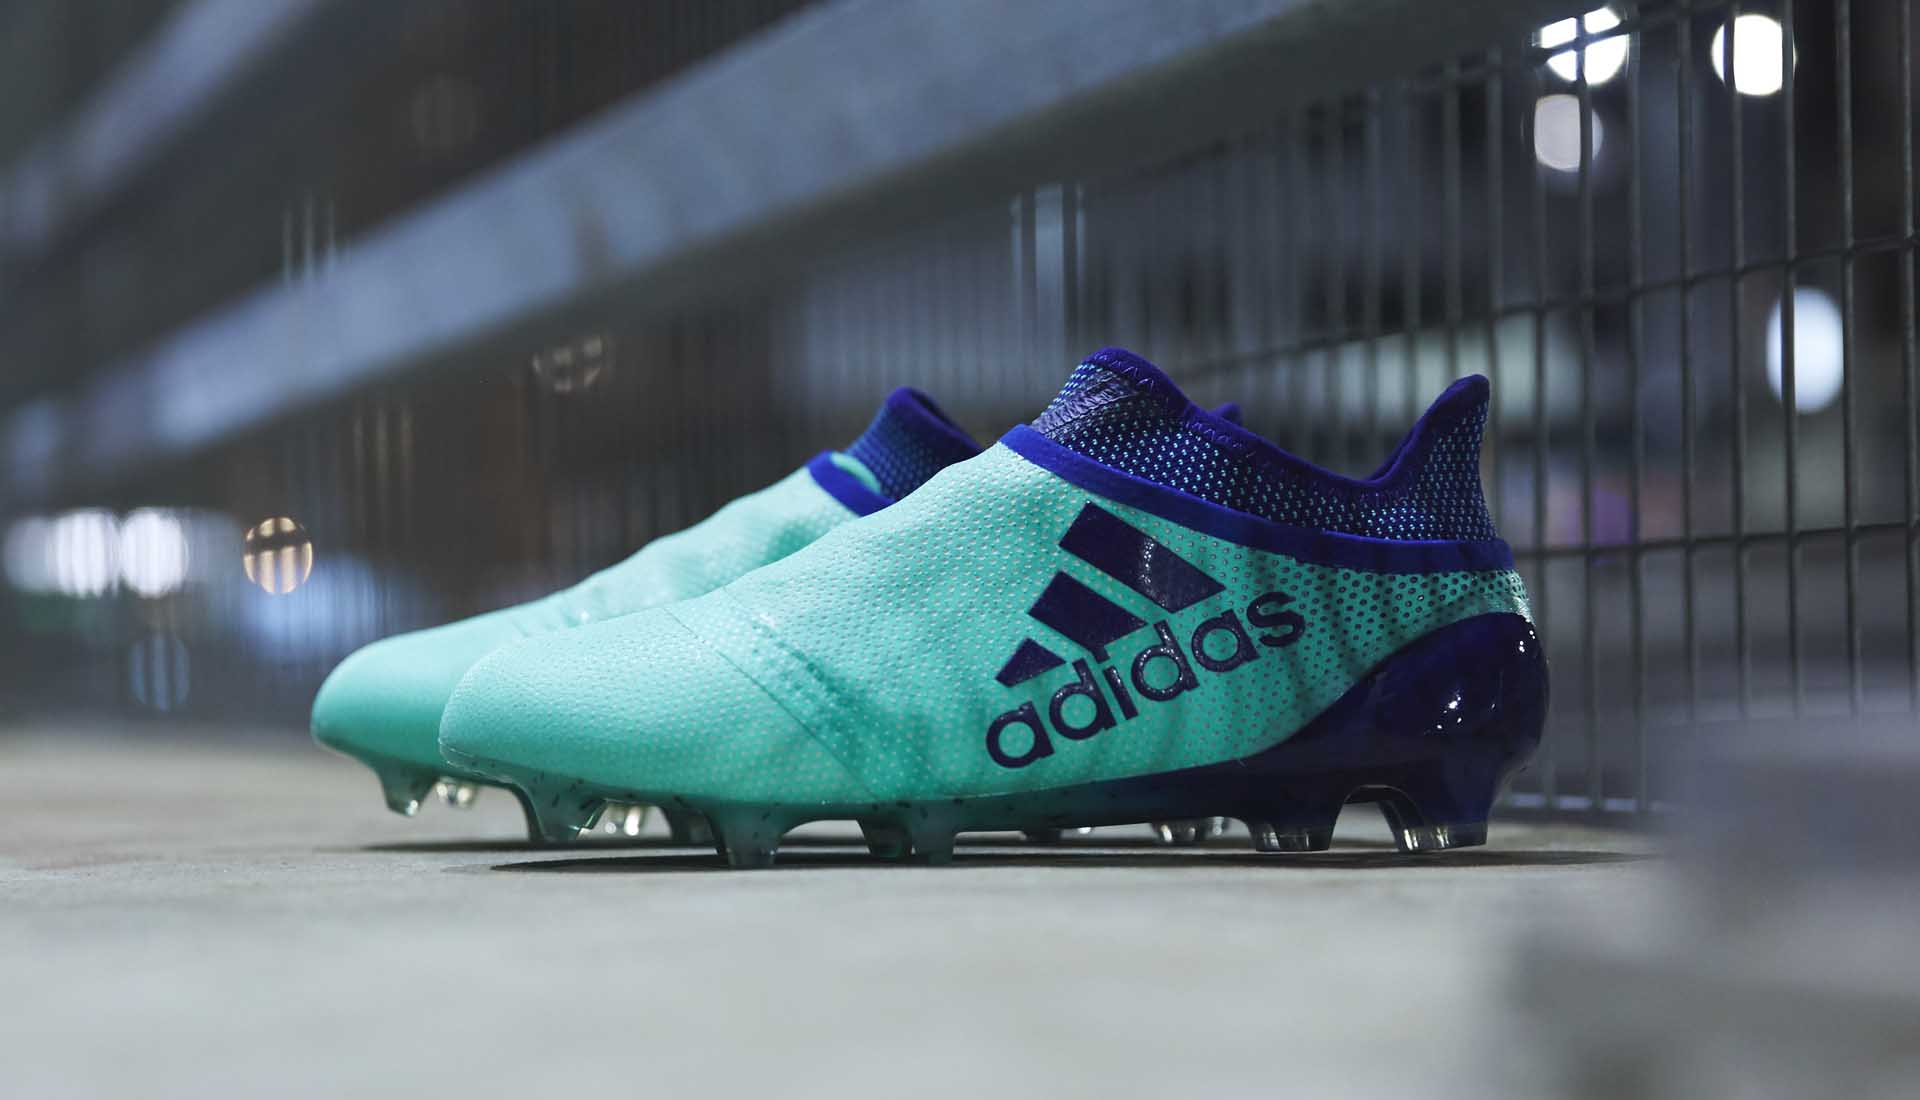 Adidas deadly strike pack X 17+